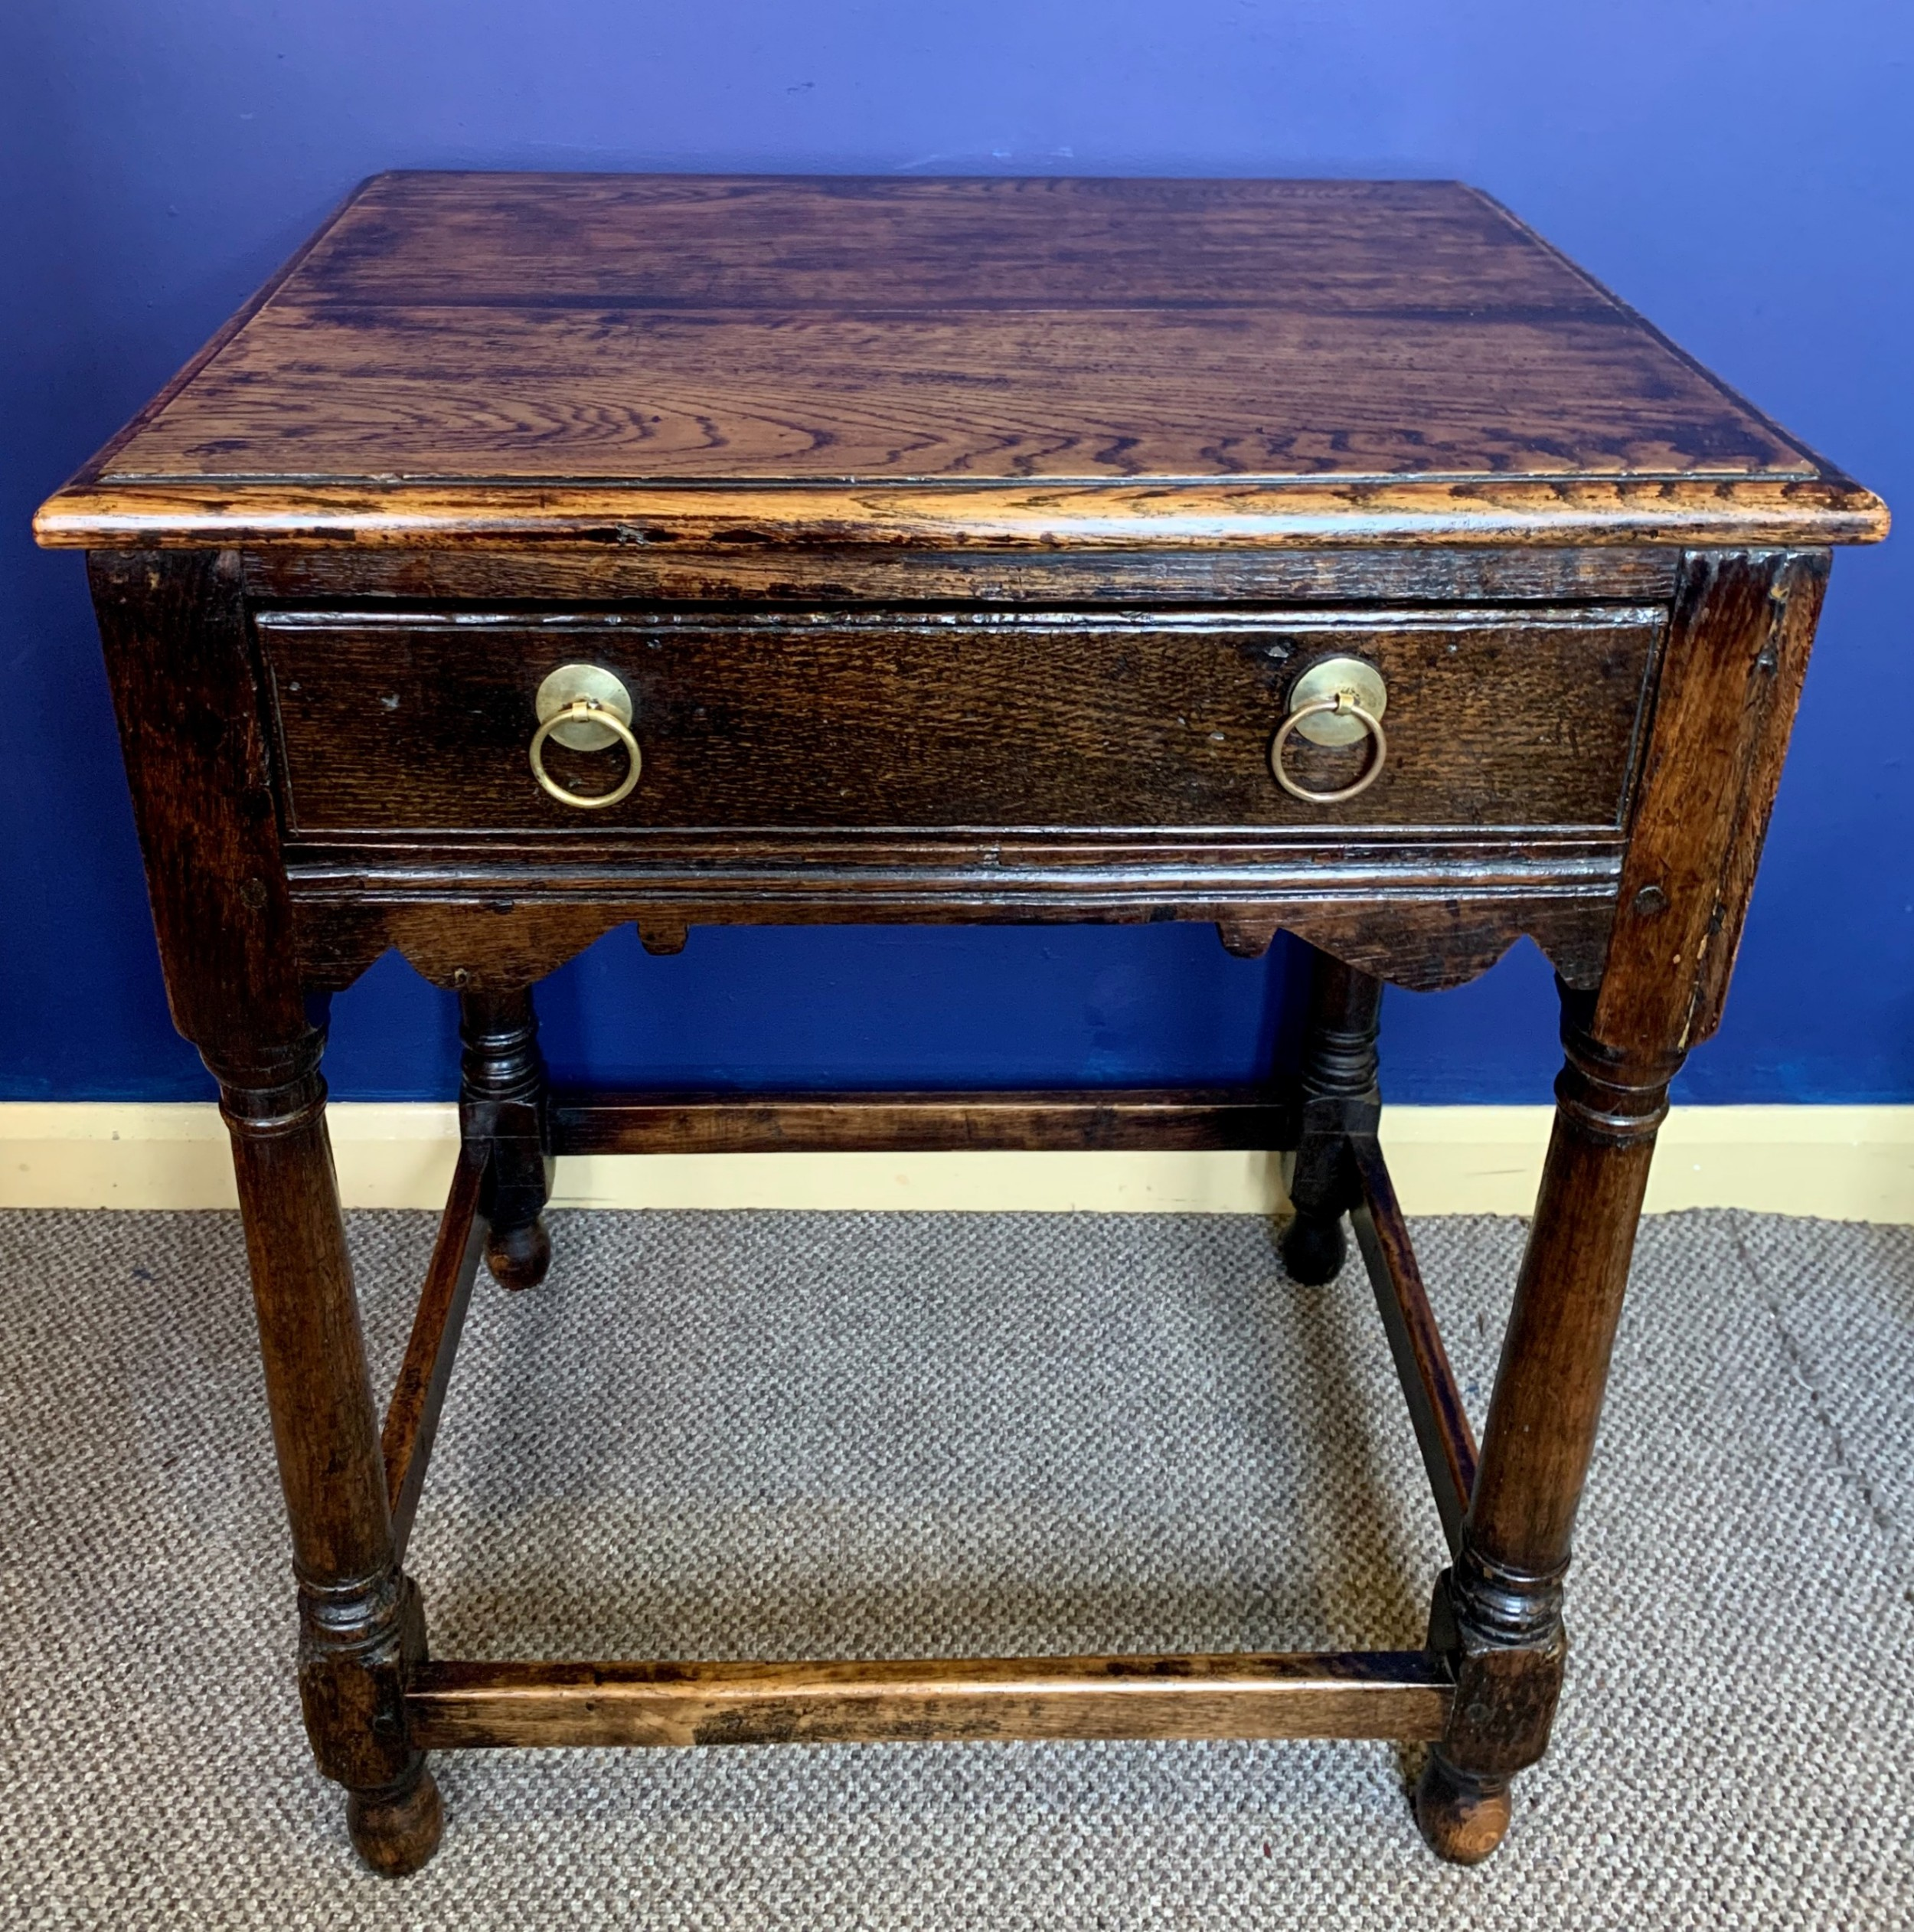 c18th c english oak side table with original handles